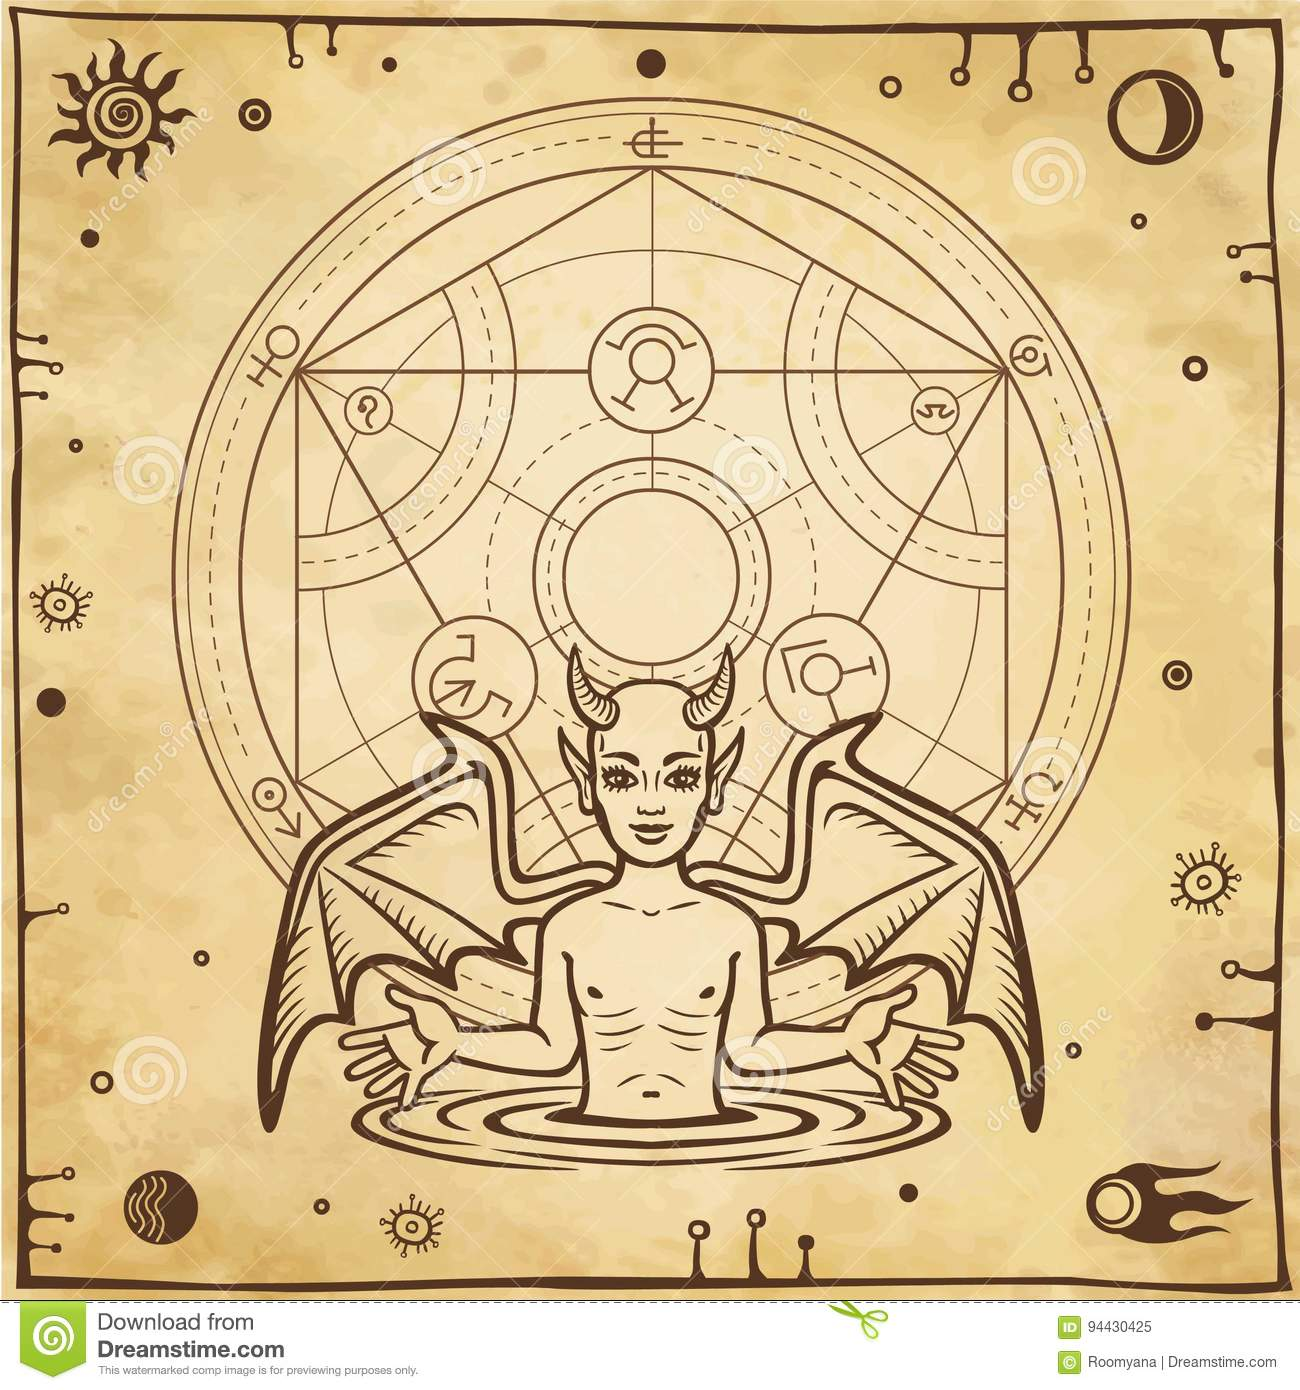 Alchemical drawing: little demon, circle of a homunculus. Esoteric, mystic, occultism.